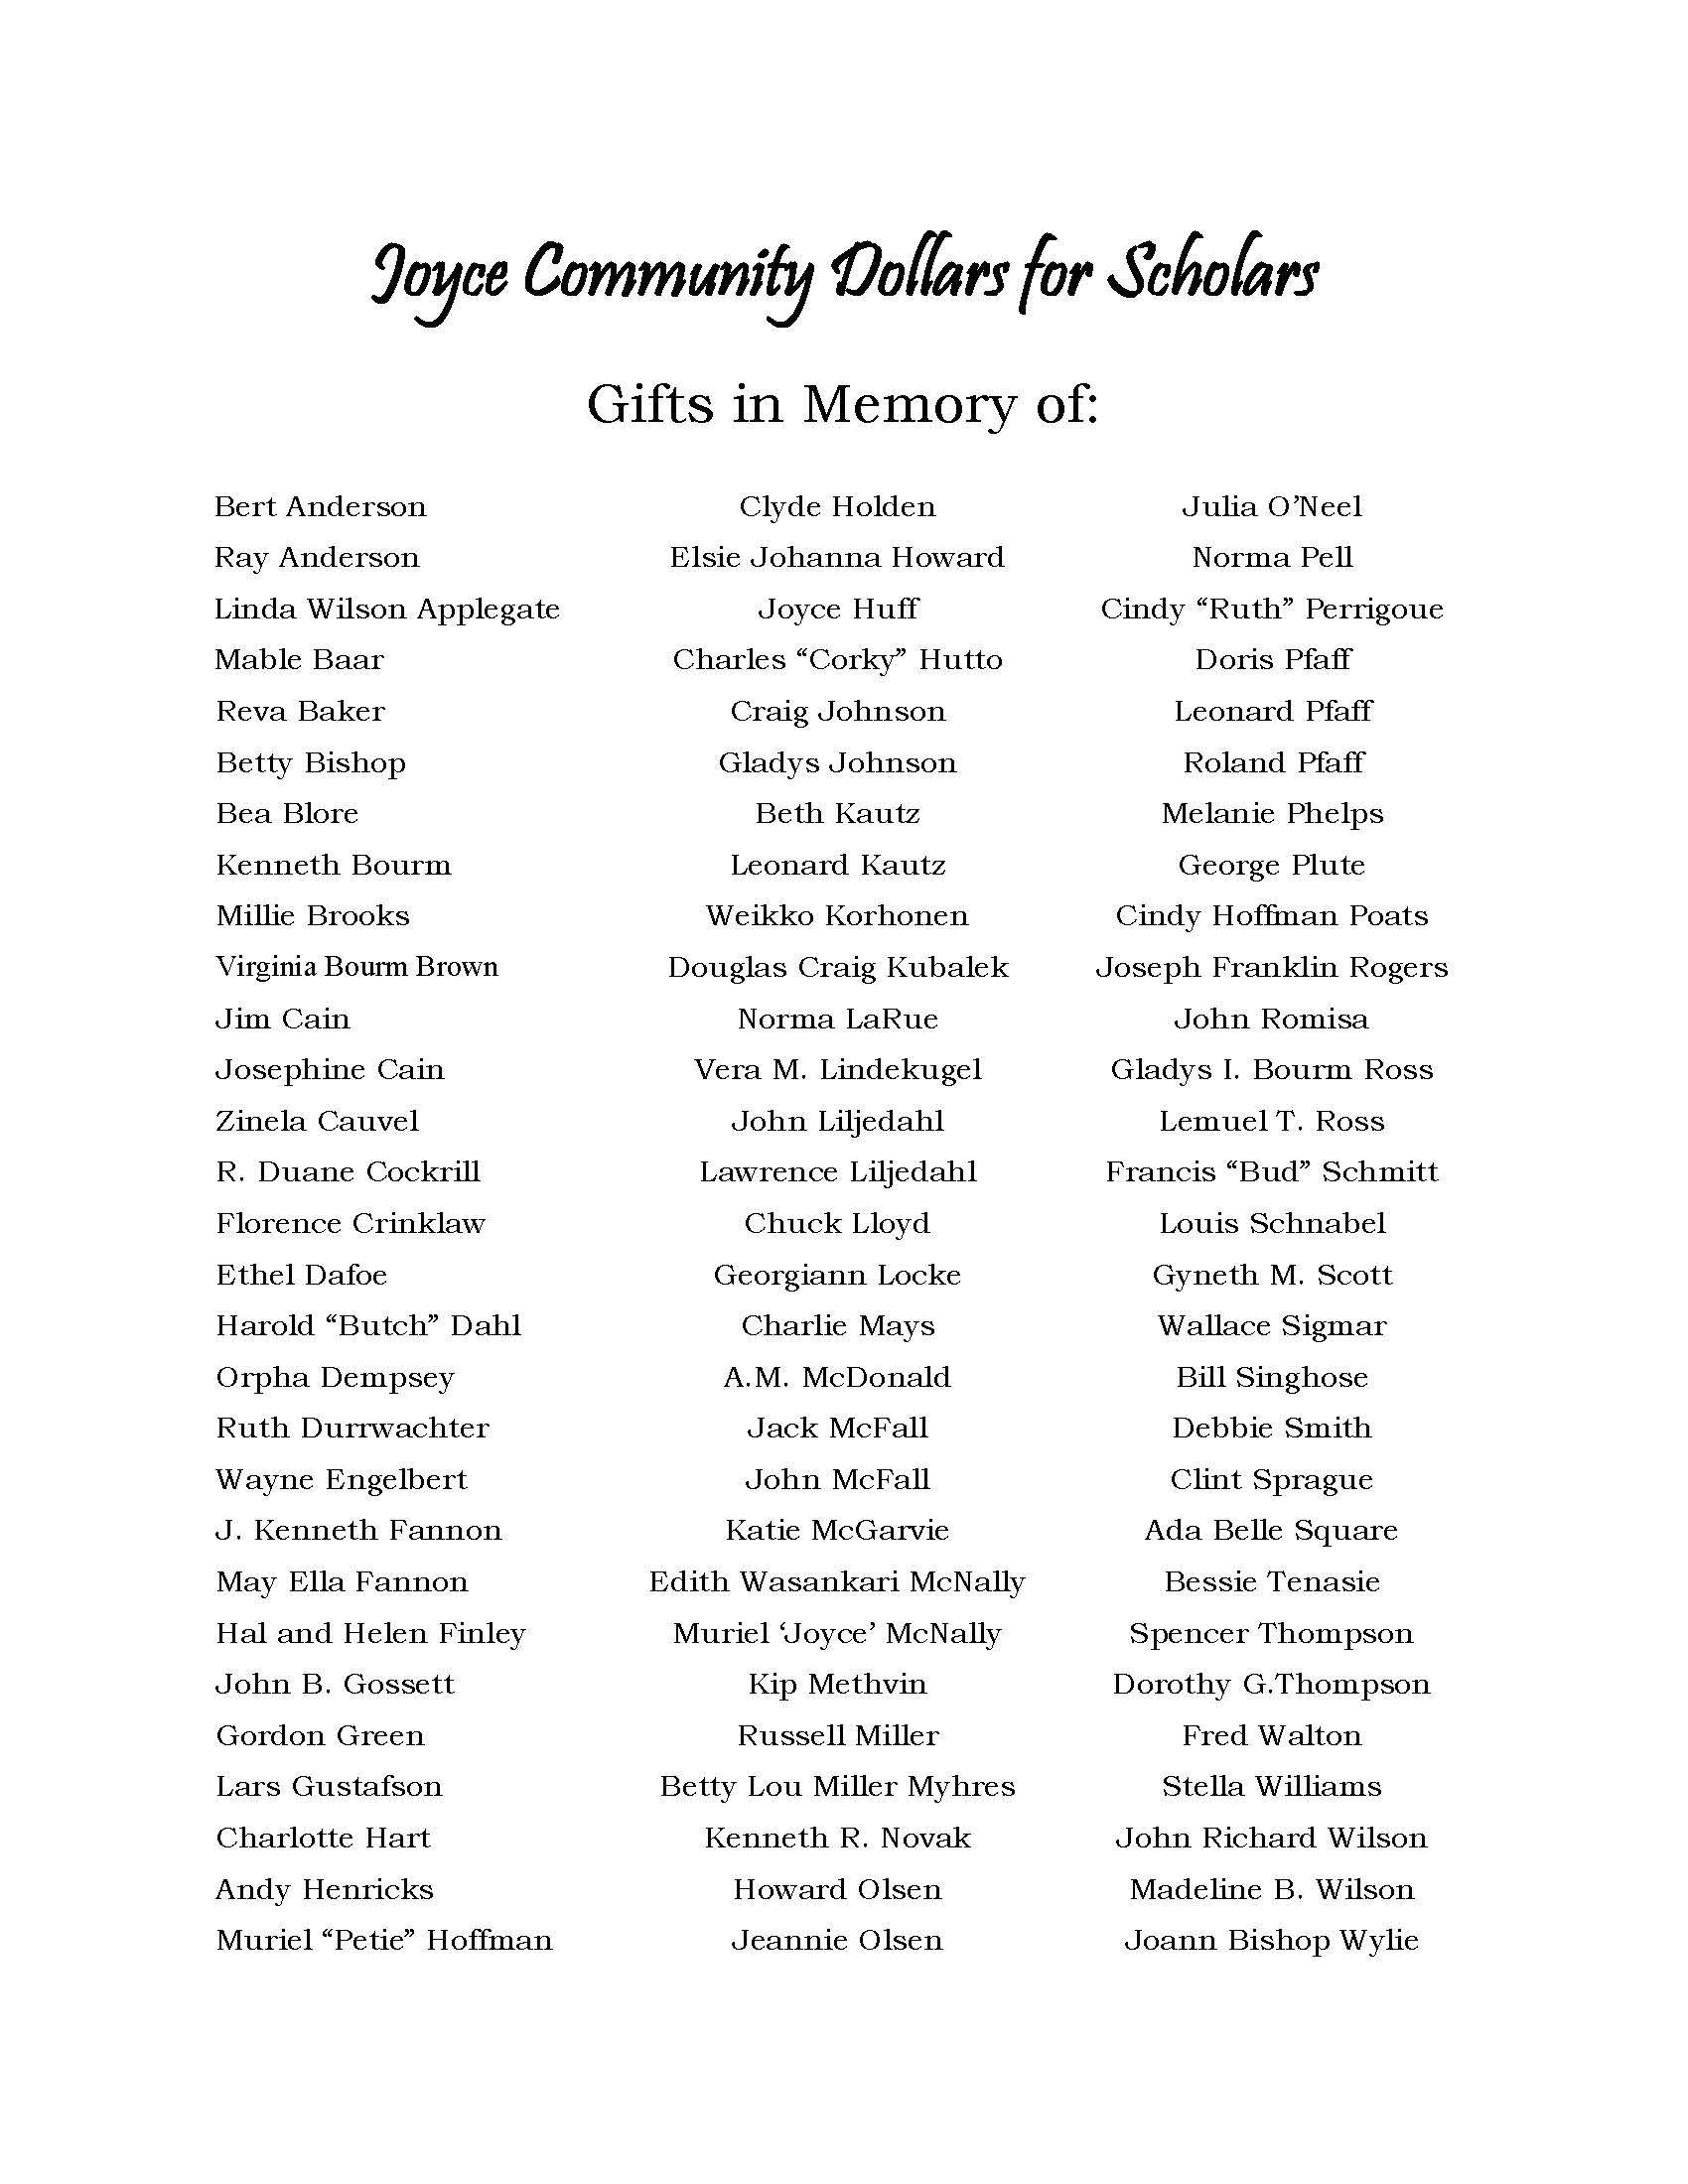 Class of 2020 Commencement Page 3